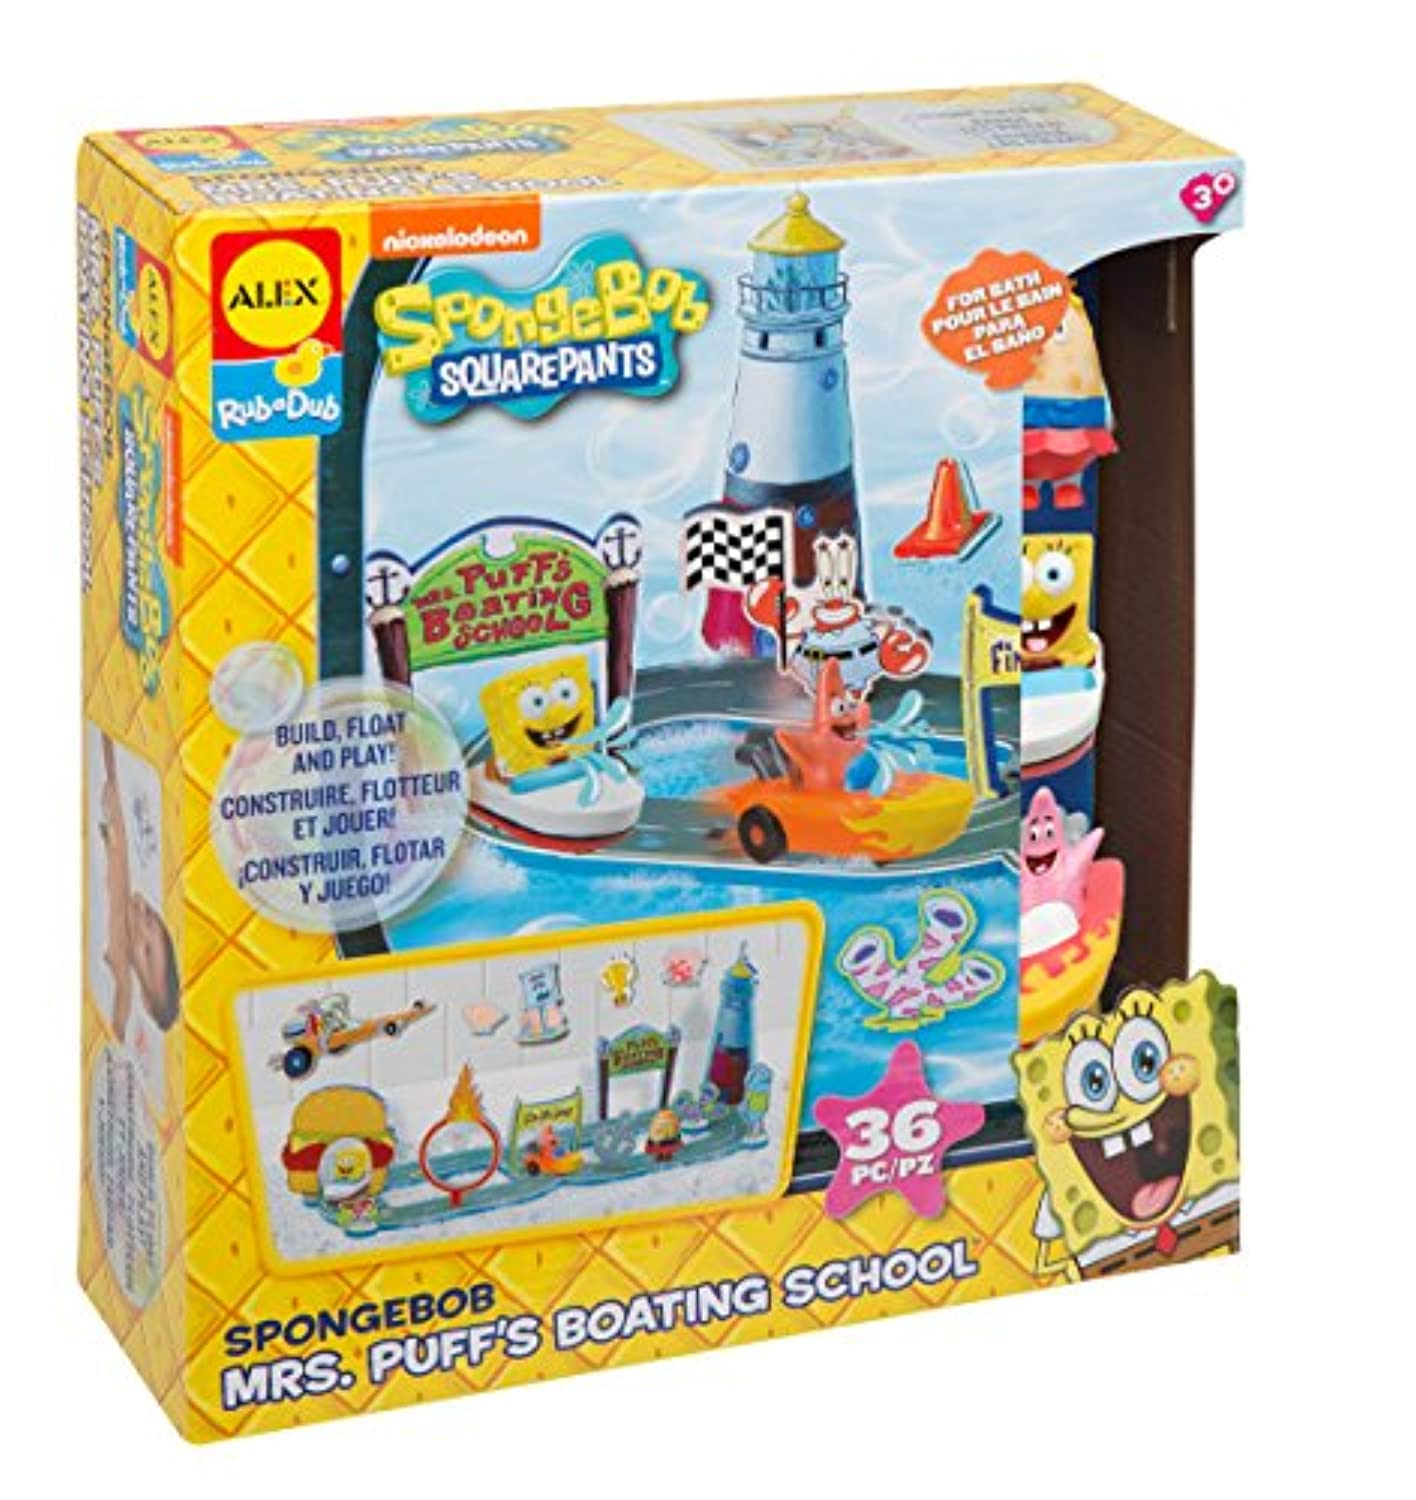 Spongebob Mrs。Puff 's Boating School Tub Playset